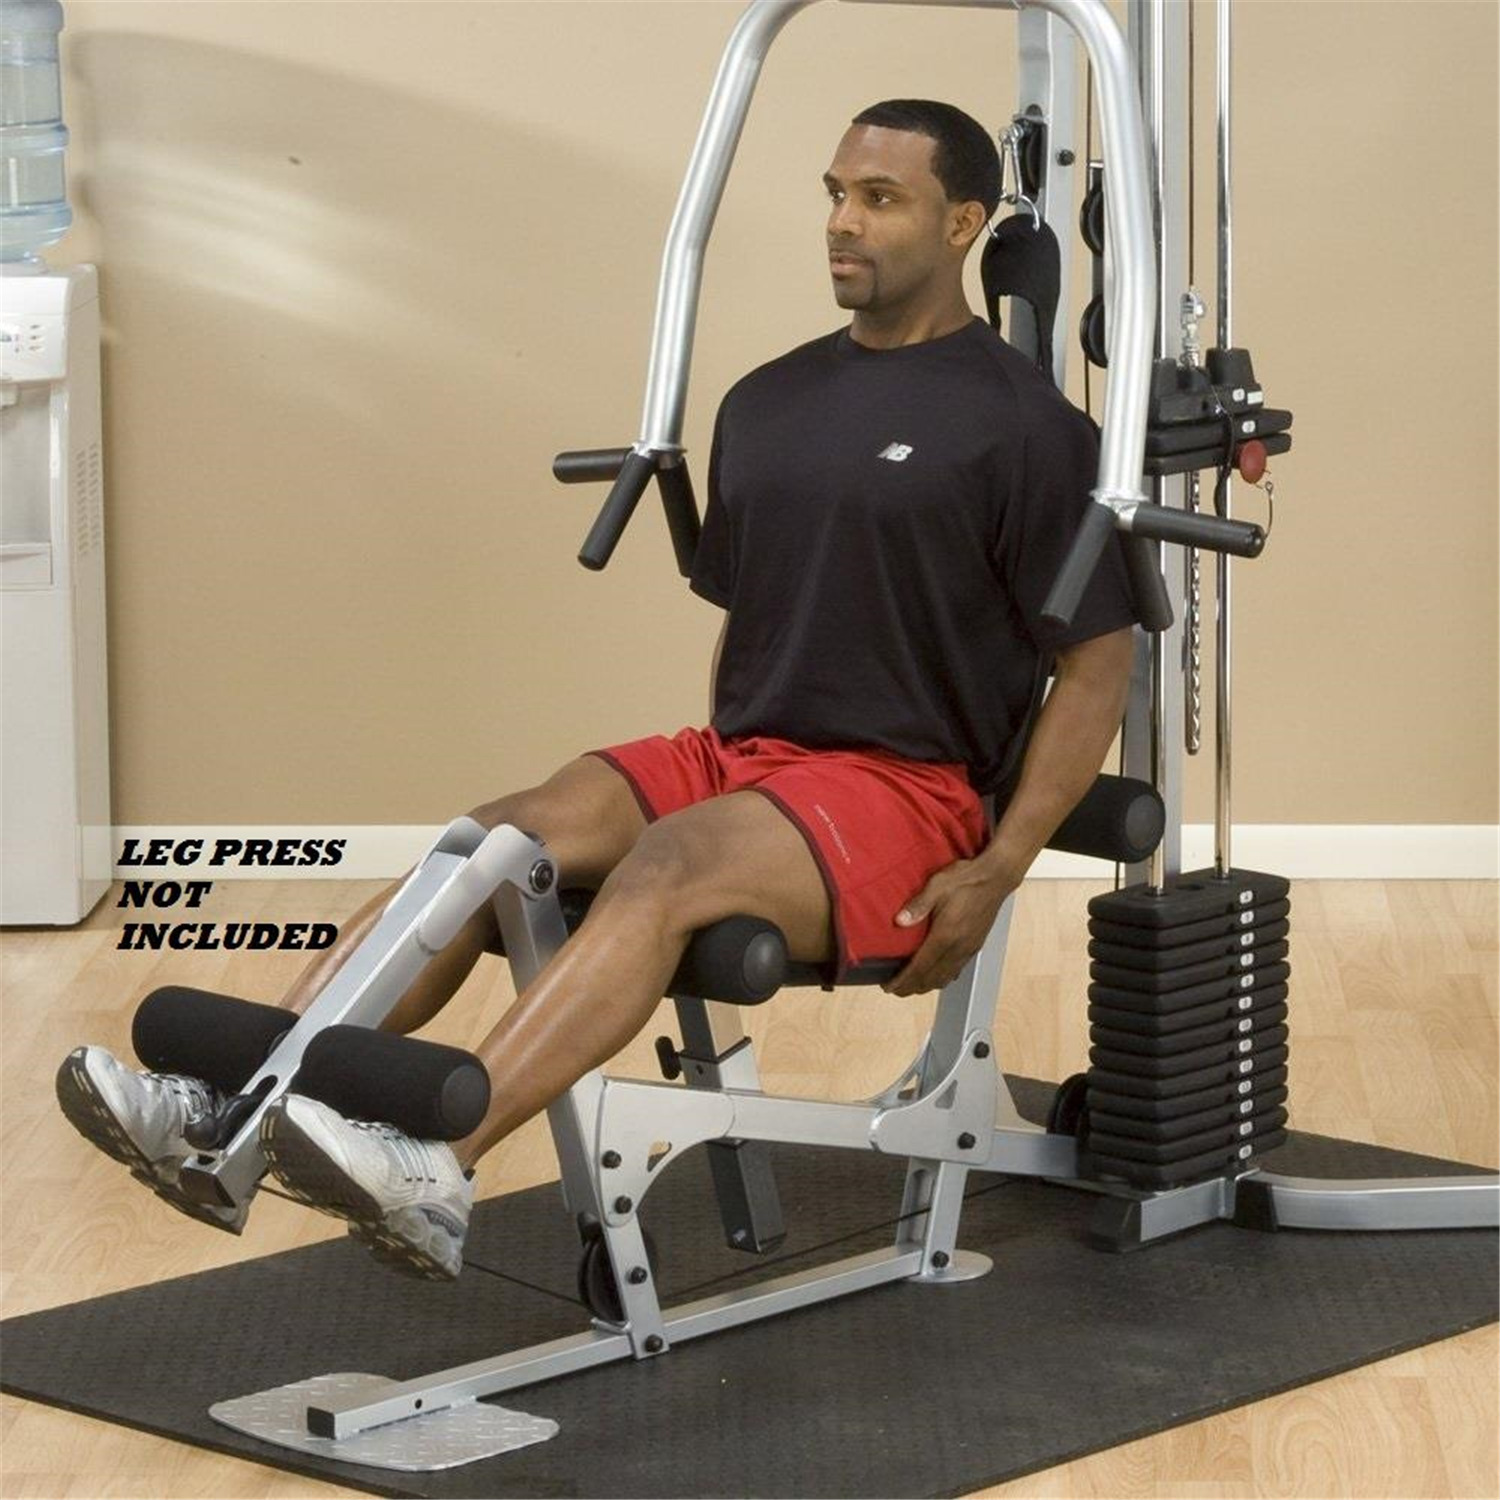 Body solid powerline bsg home gym leg press